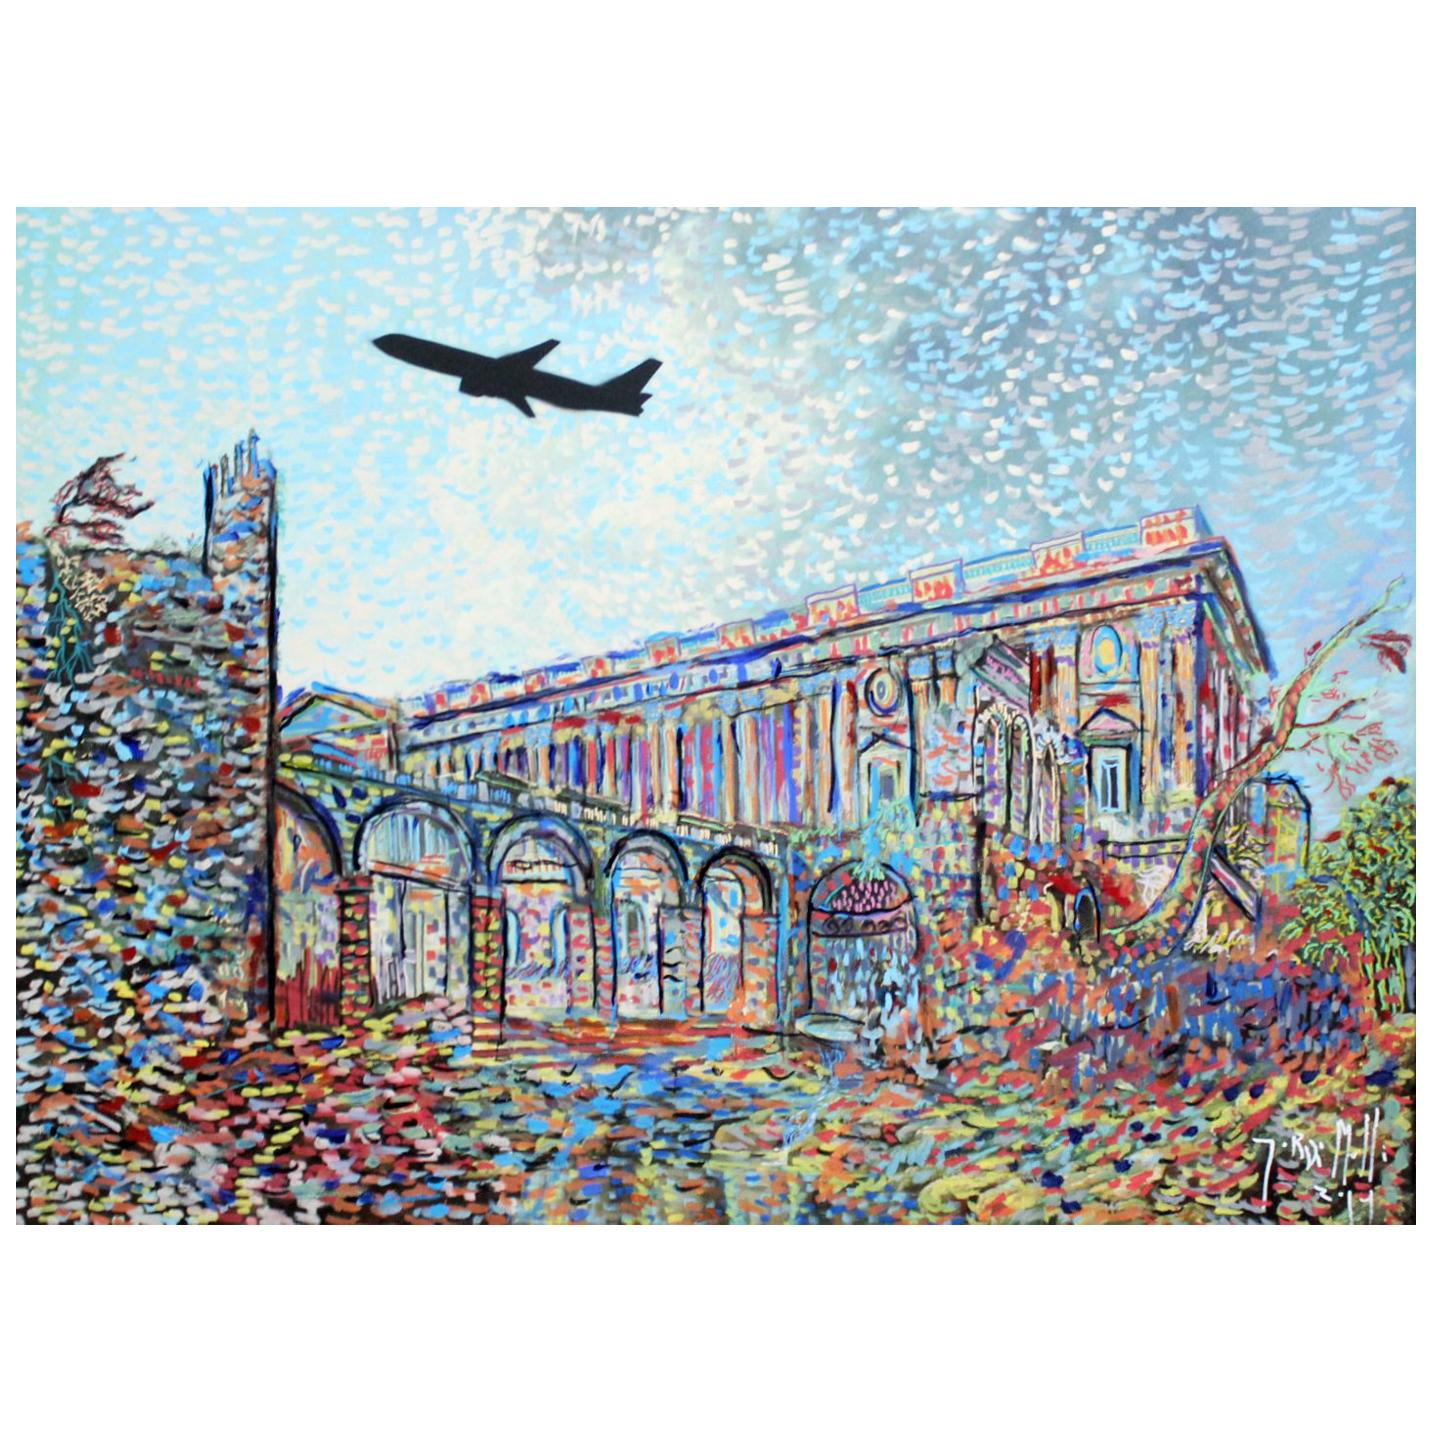 2014 Pointillist Painting by Artist and Actor Jordi Mollá